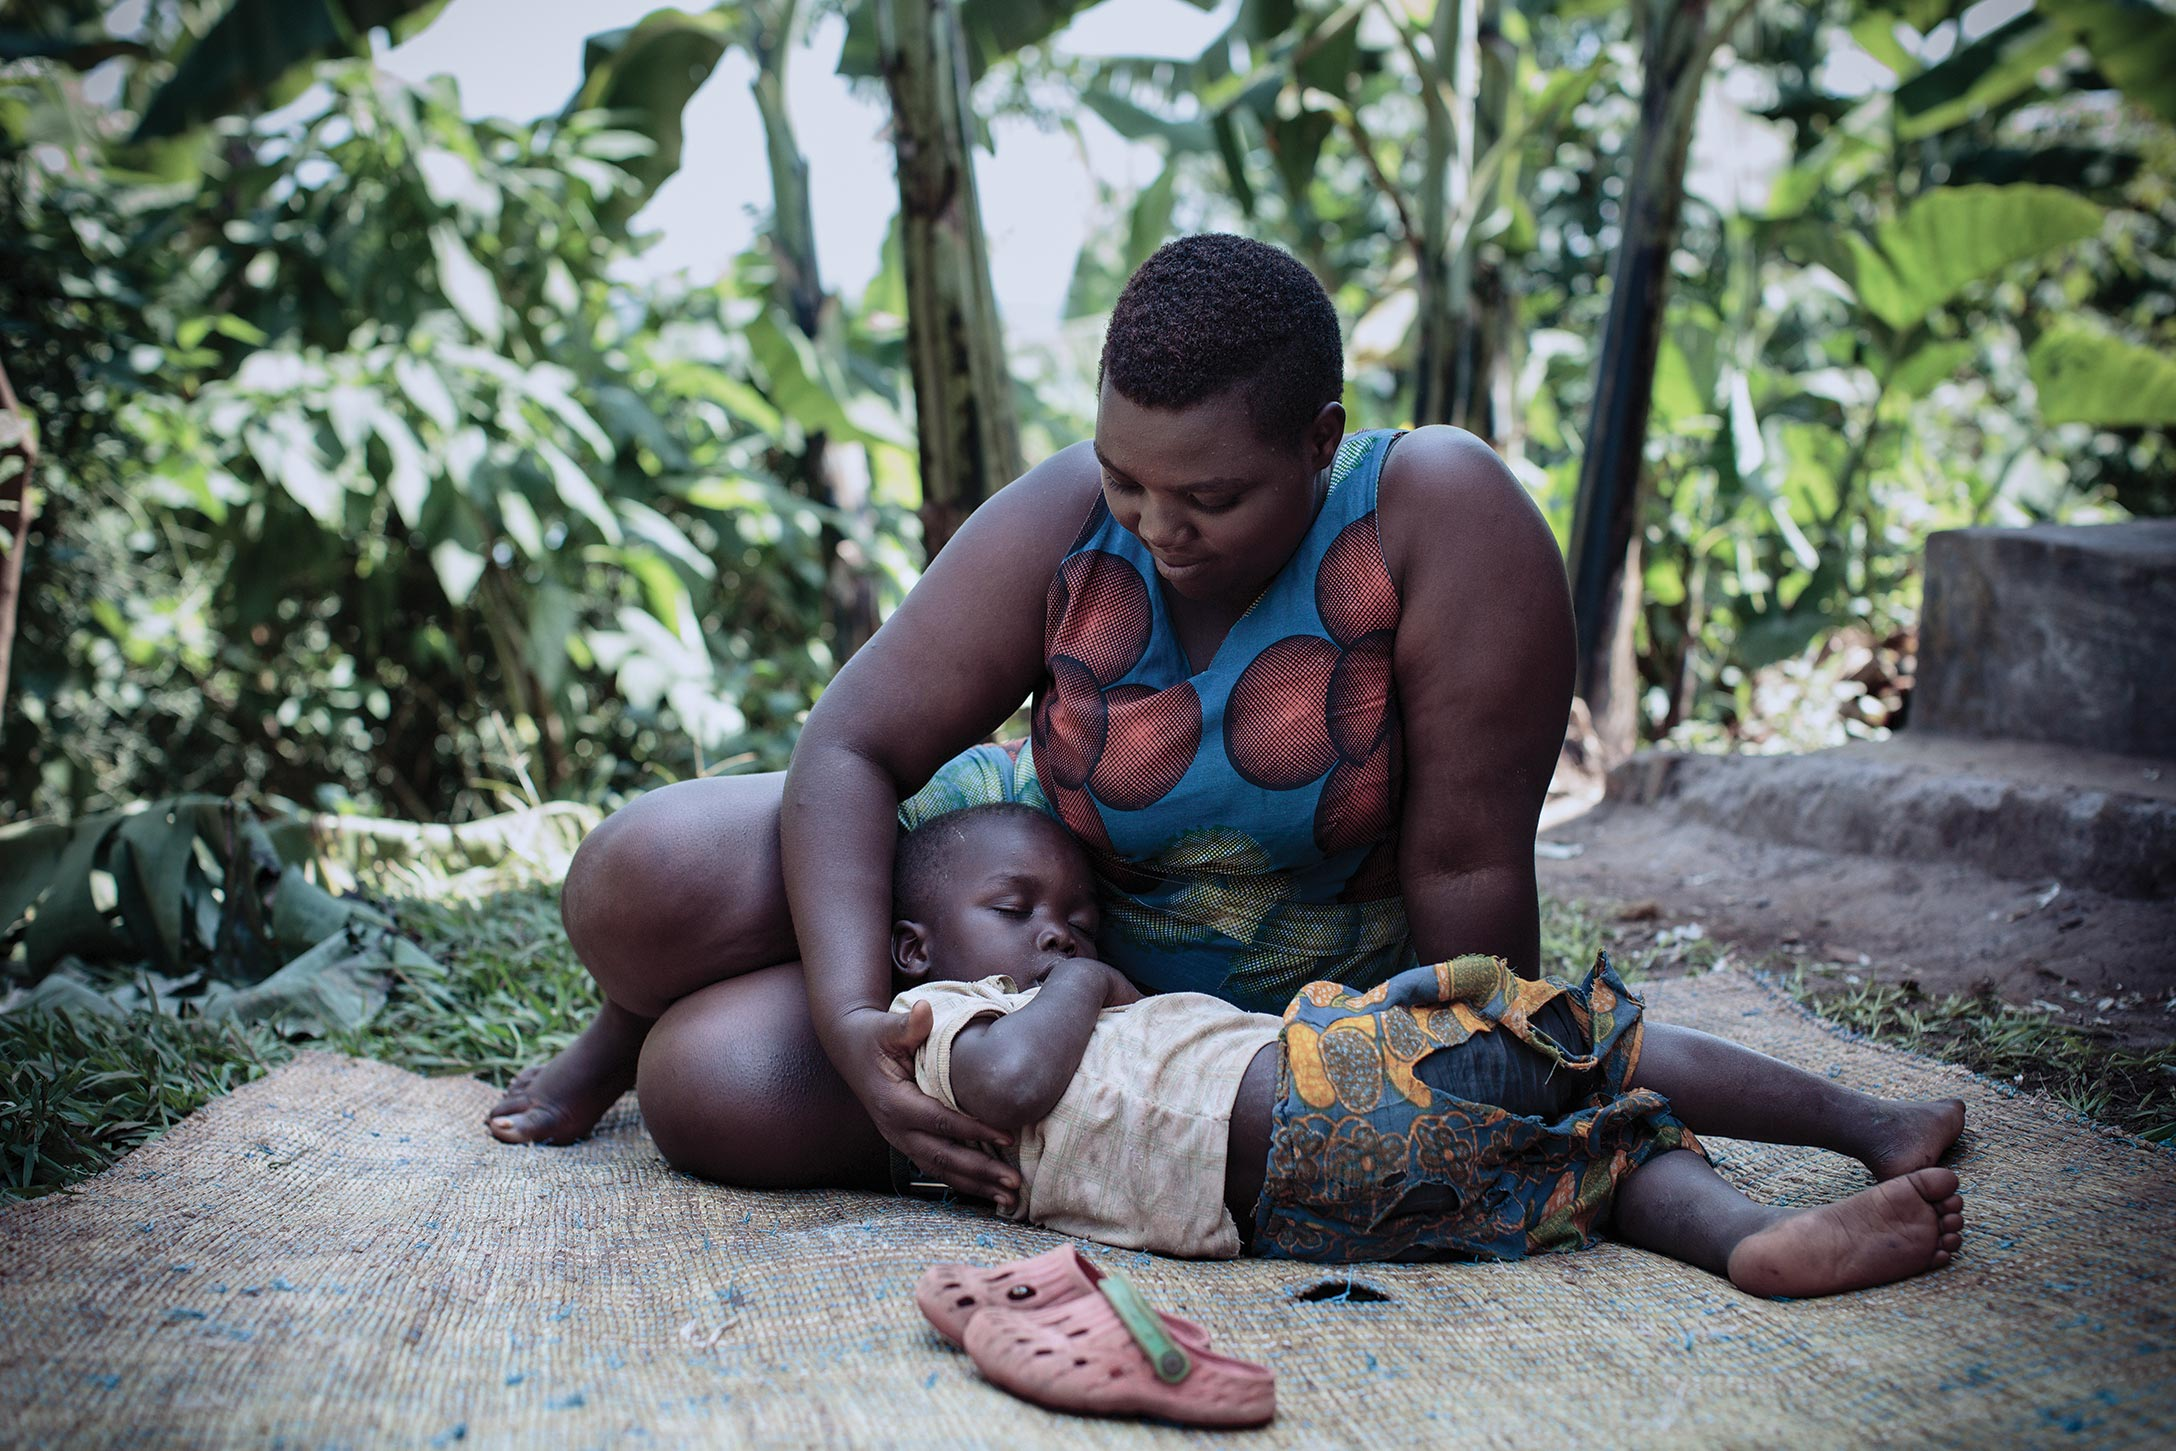 A toddler reclines as his mother cradles his head in her lap and gazes down at her son.